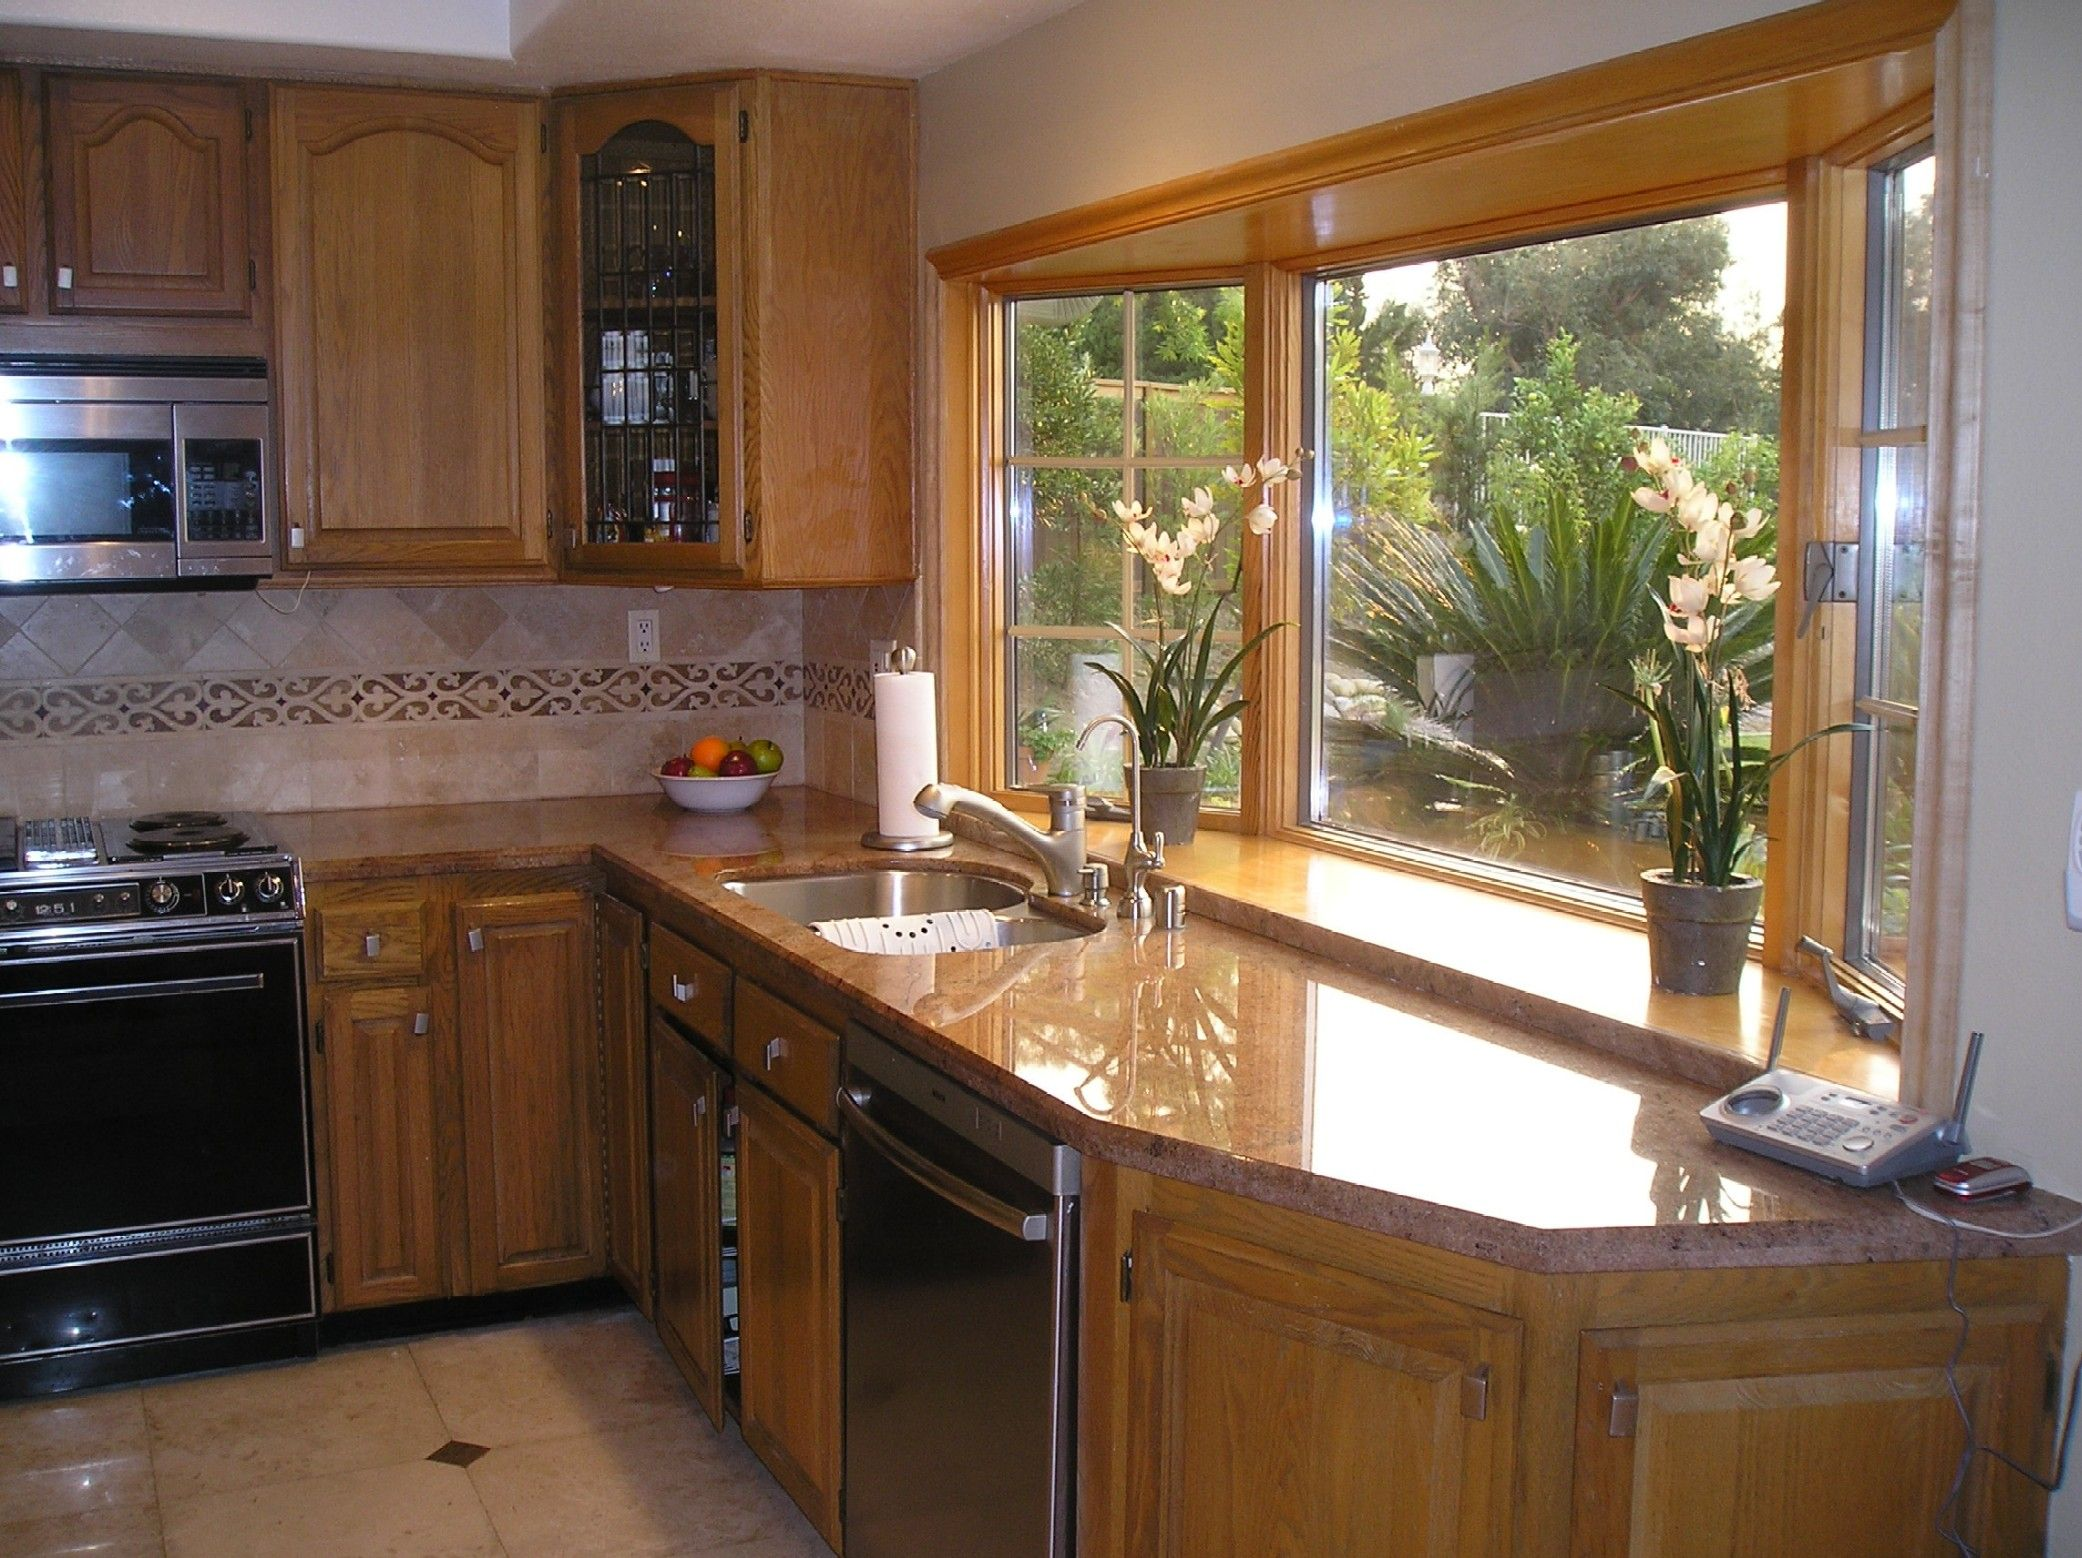 kitchen designs with large windows kitche bay windows view from one of 2 bay 406